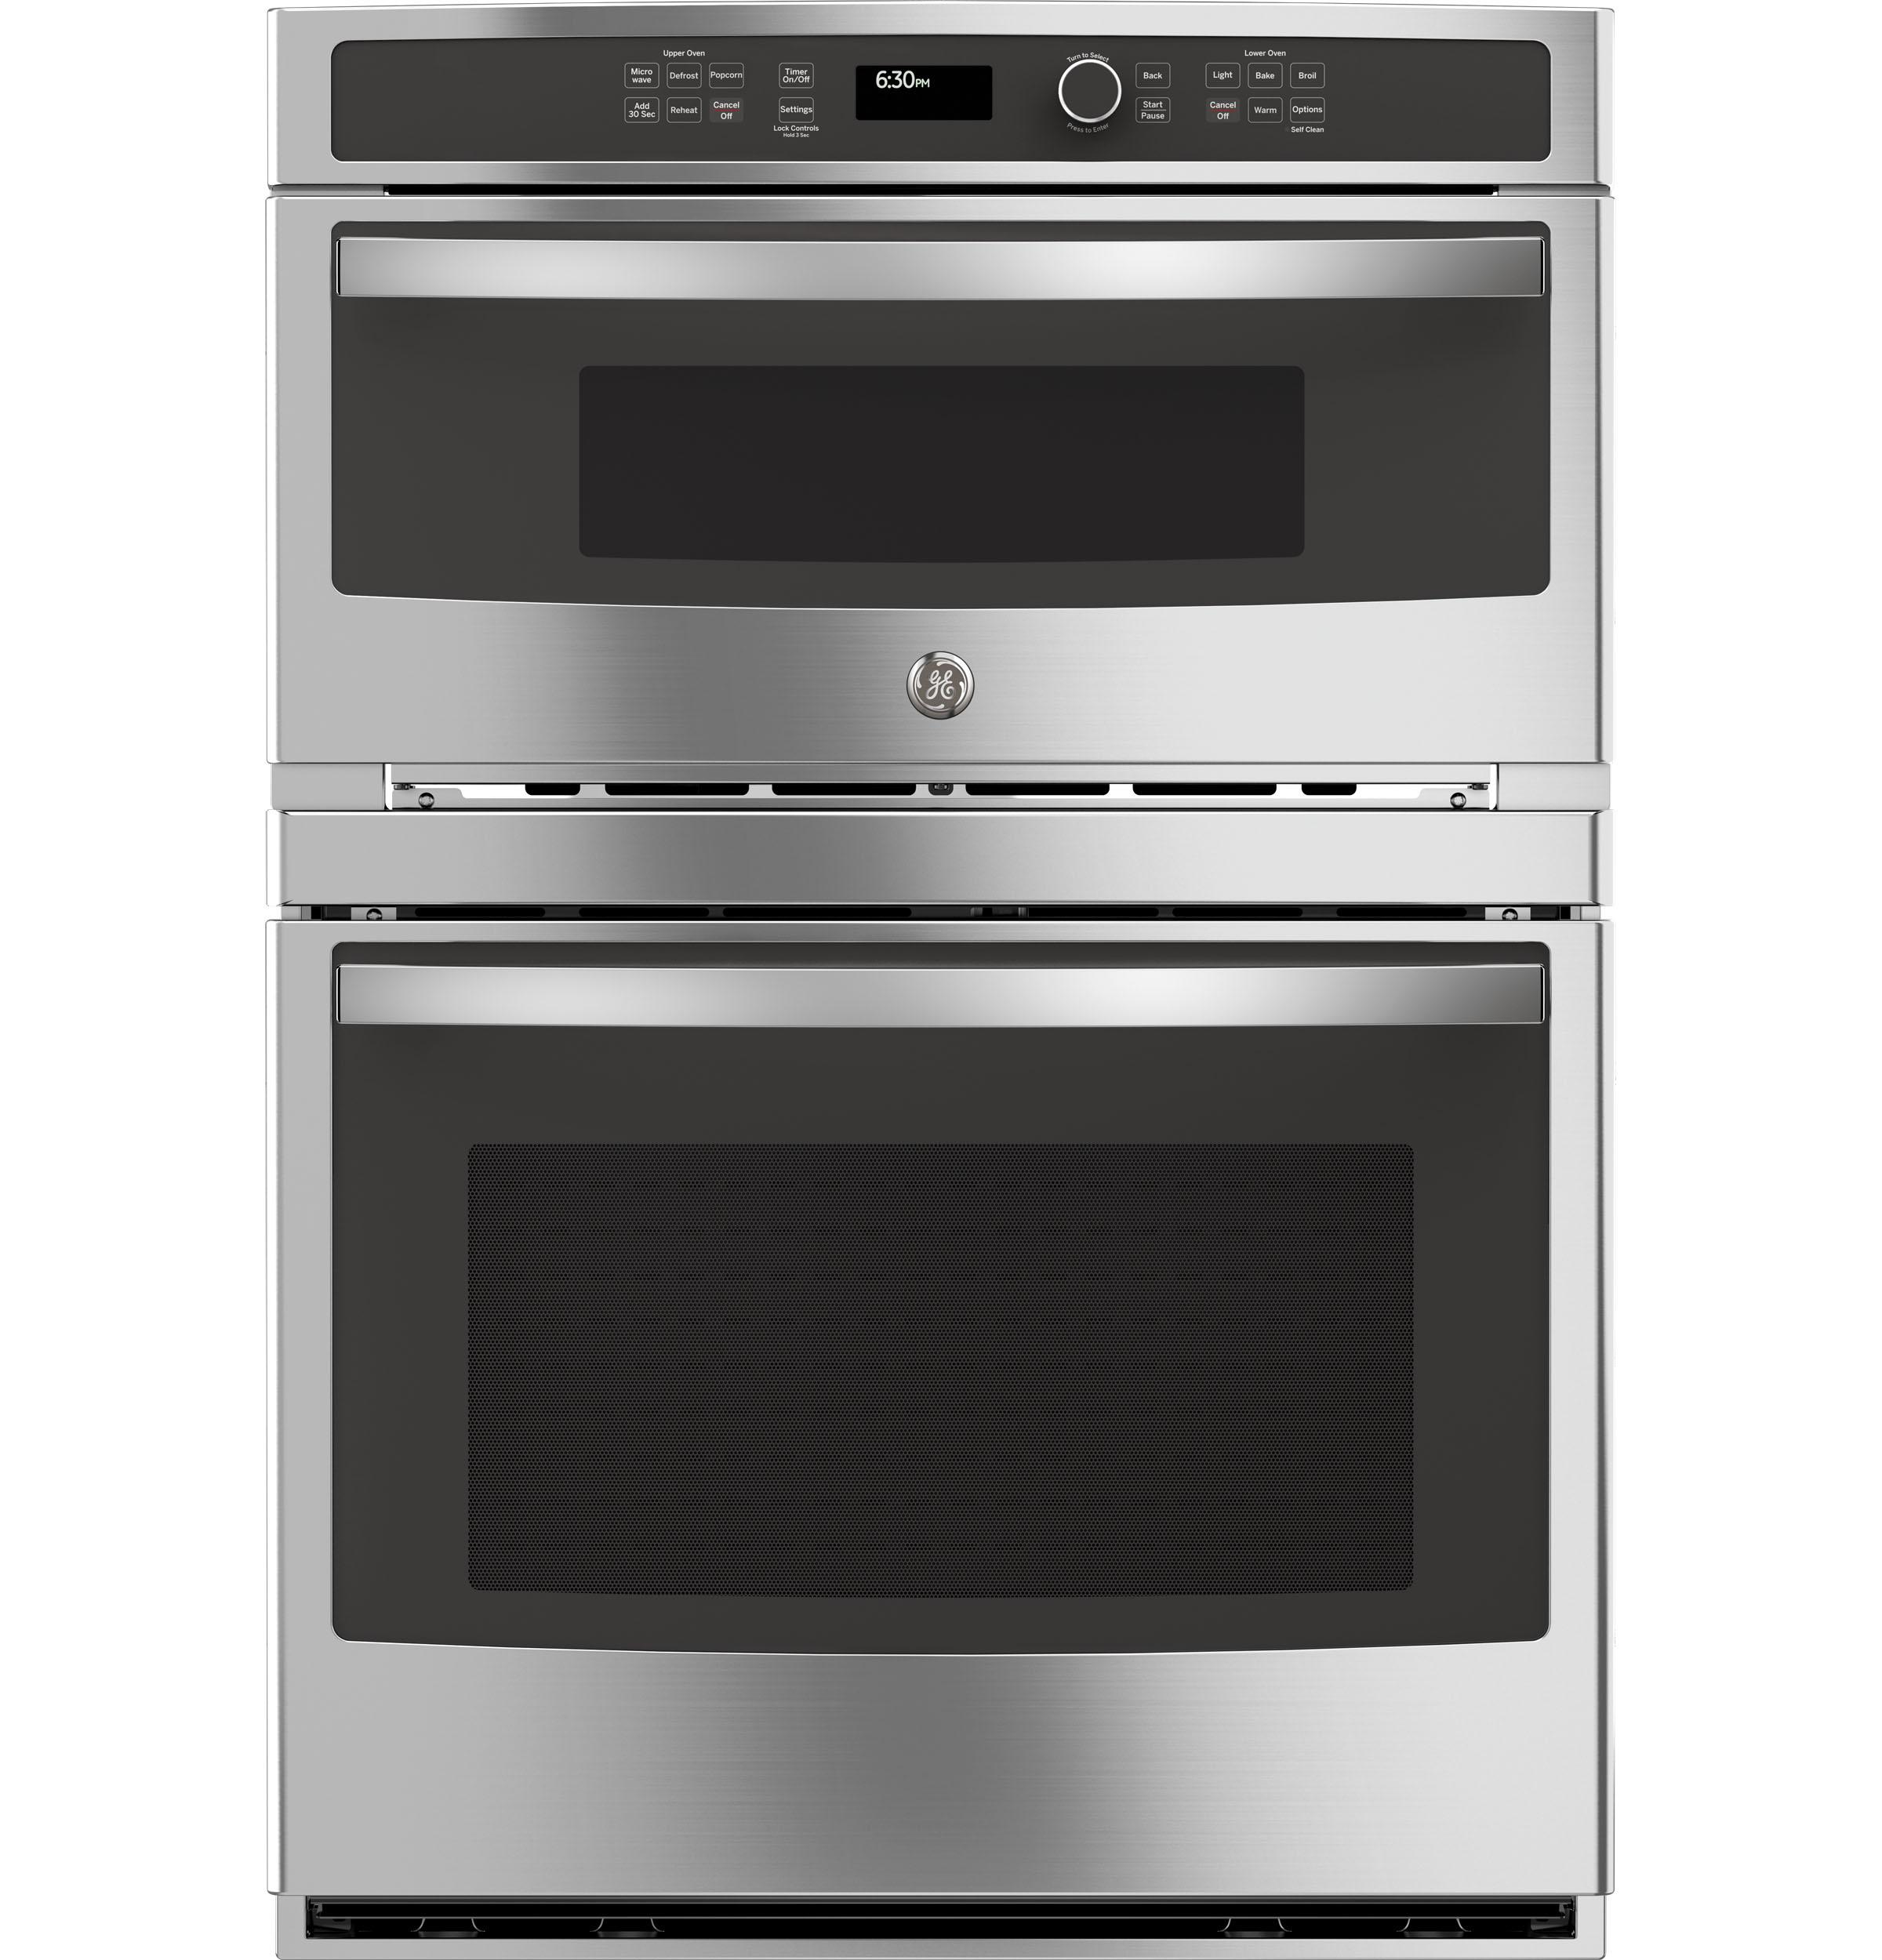 "GE30"" Combination Double Wall Oven"